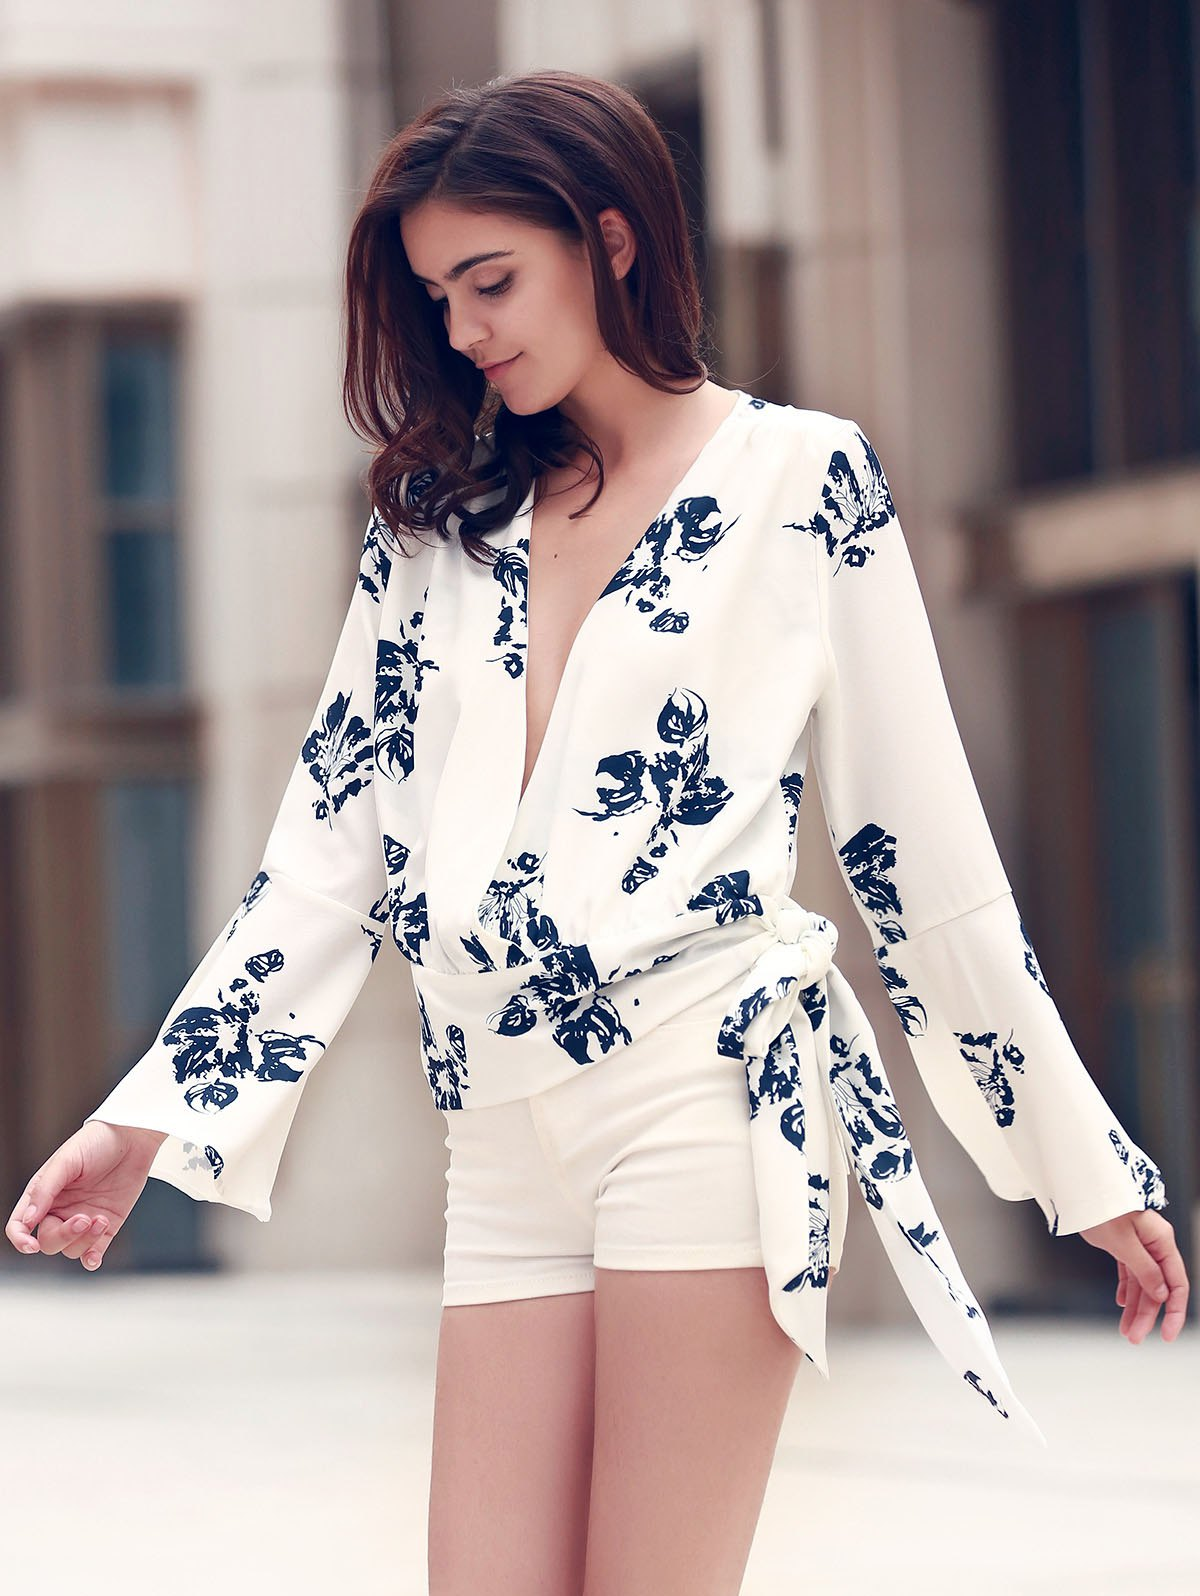 Alluring Women's Plunging Neckline Flare Sleeve Floral Print T-Shirt - WHITE S